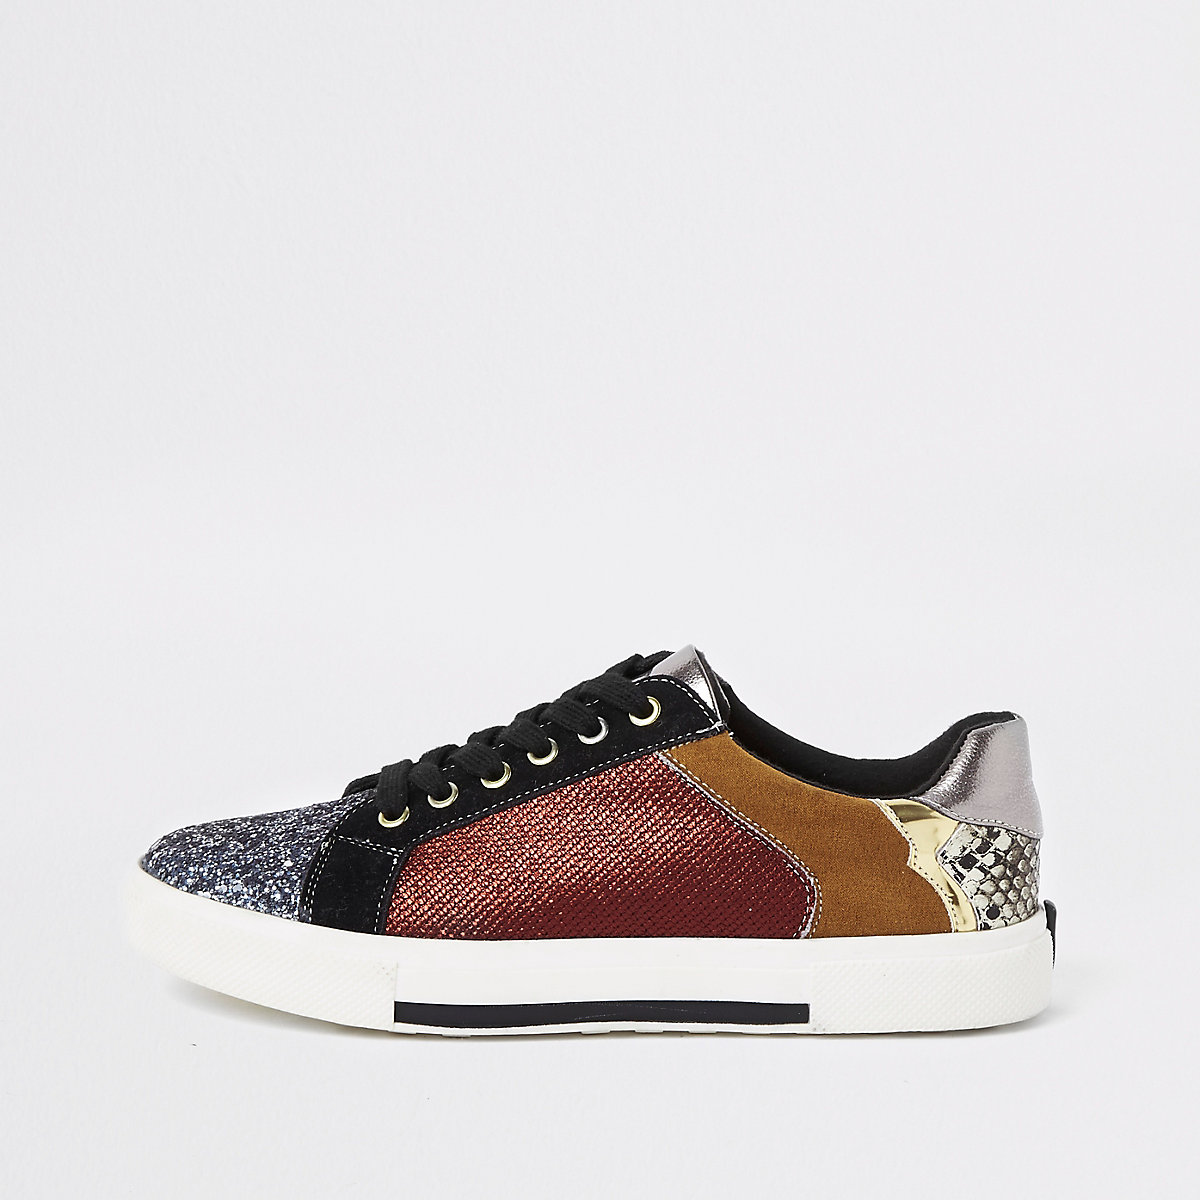 Dark red glitter lace-up sneakers